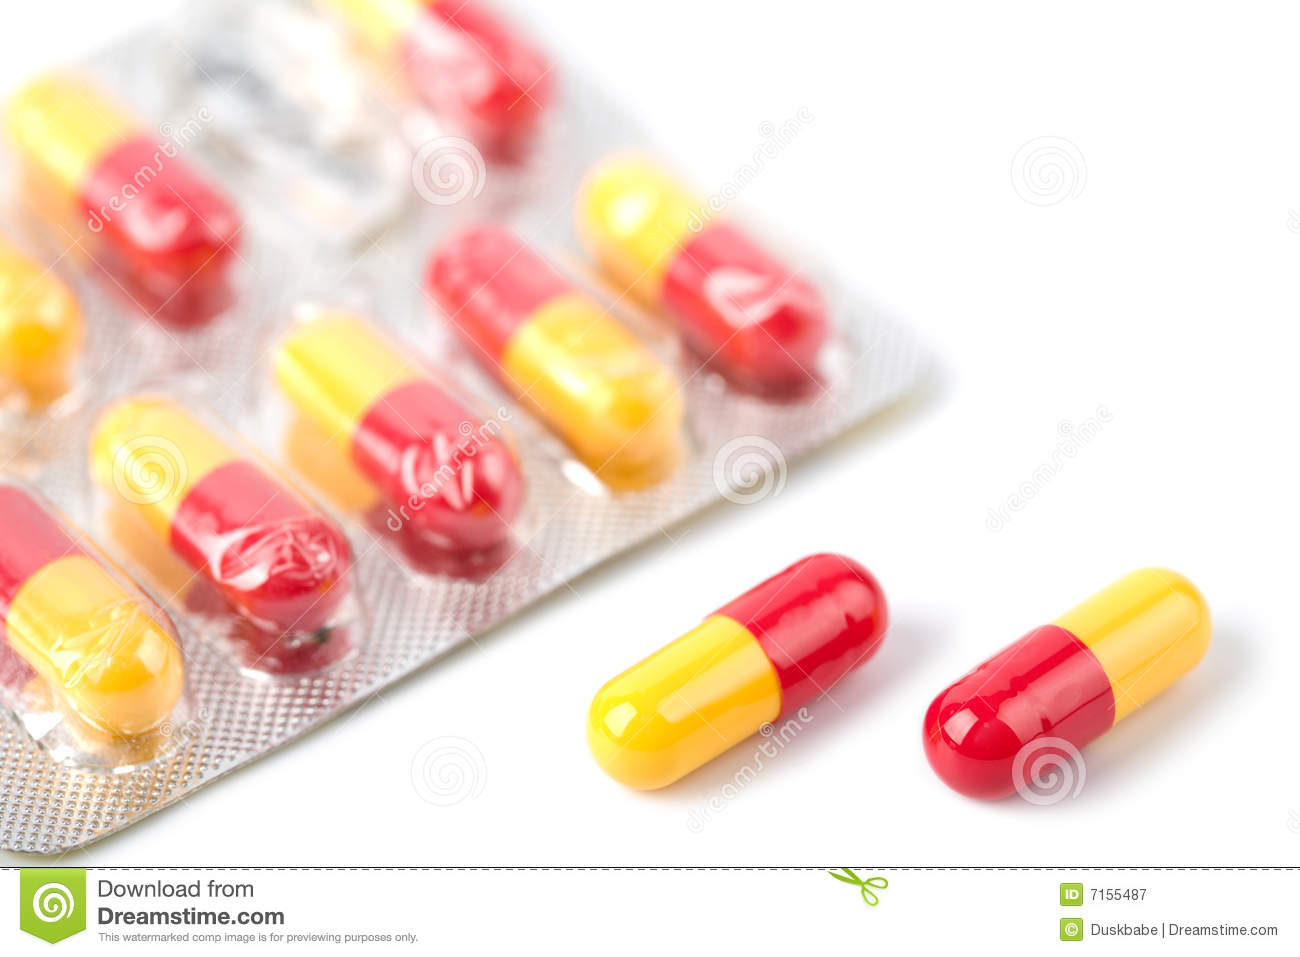 Red And Yellow Capsule Pills In - 94.3KB